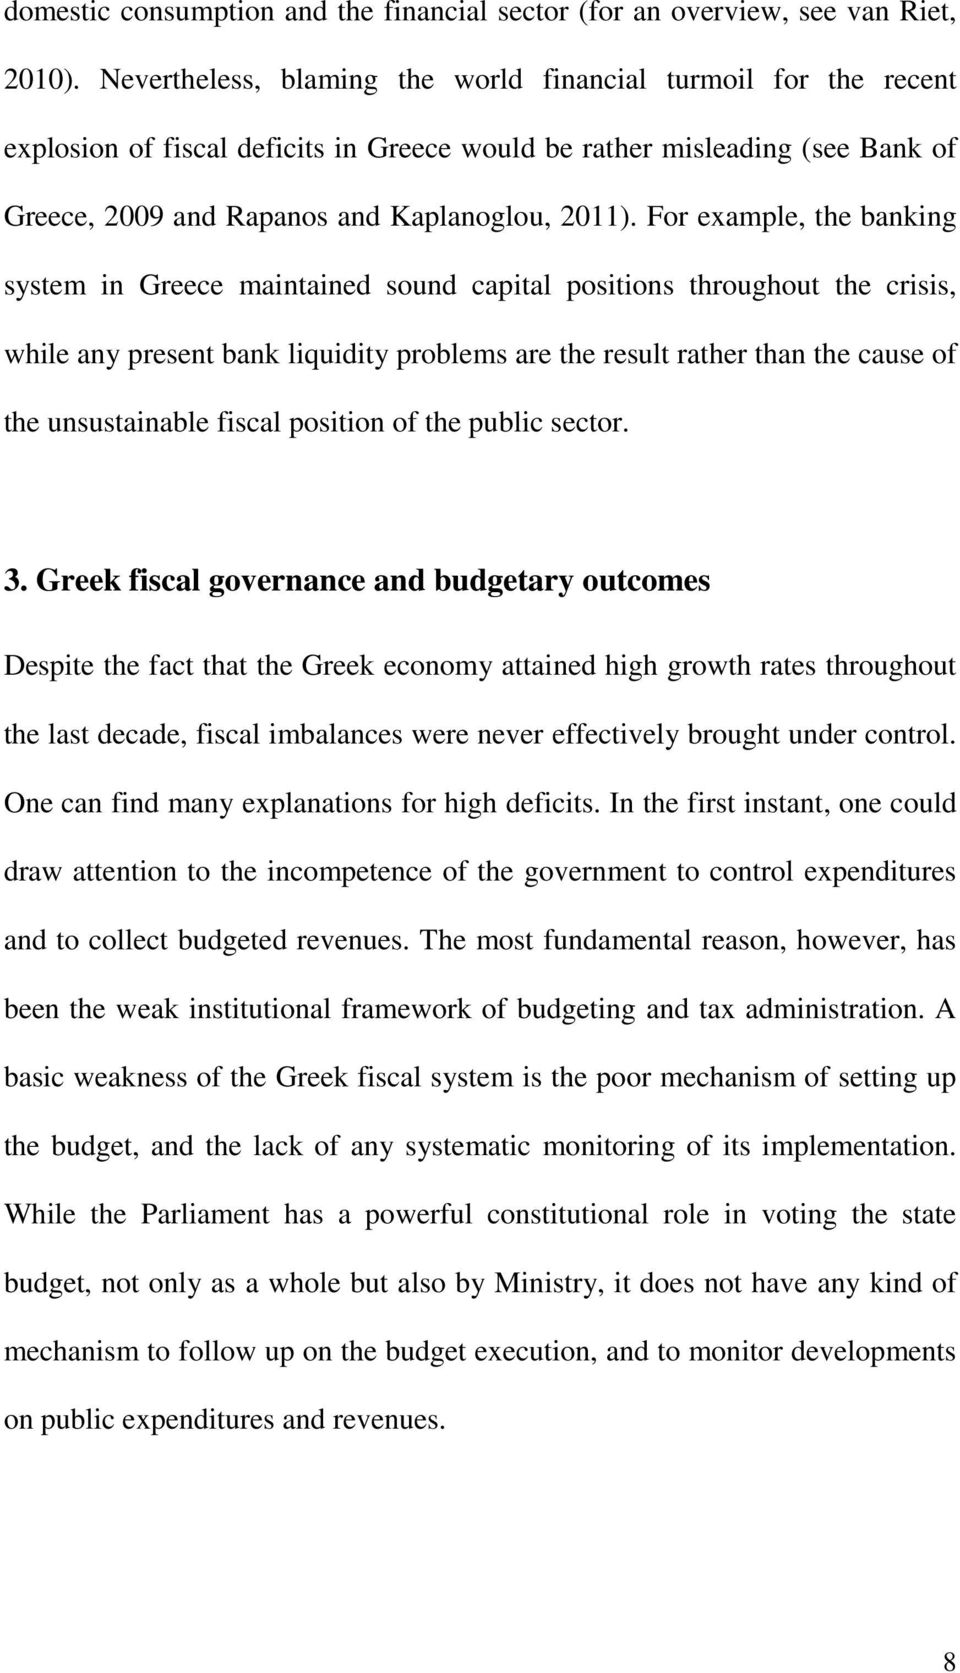 For example, the banking system in Greece maintained sound capital positions throughout the crisis, while any present bank liquidity problems are the result rather than the cause of the unsustainable